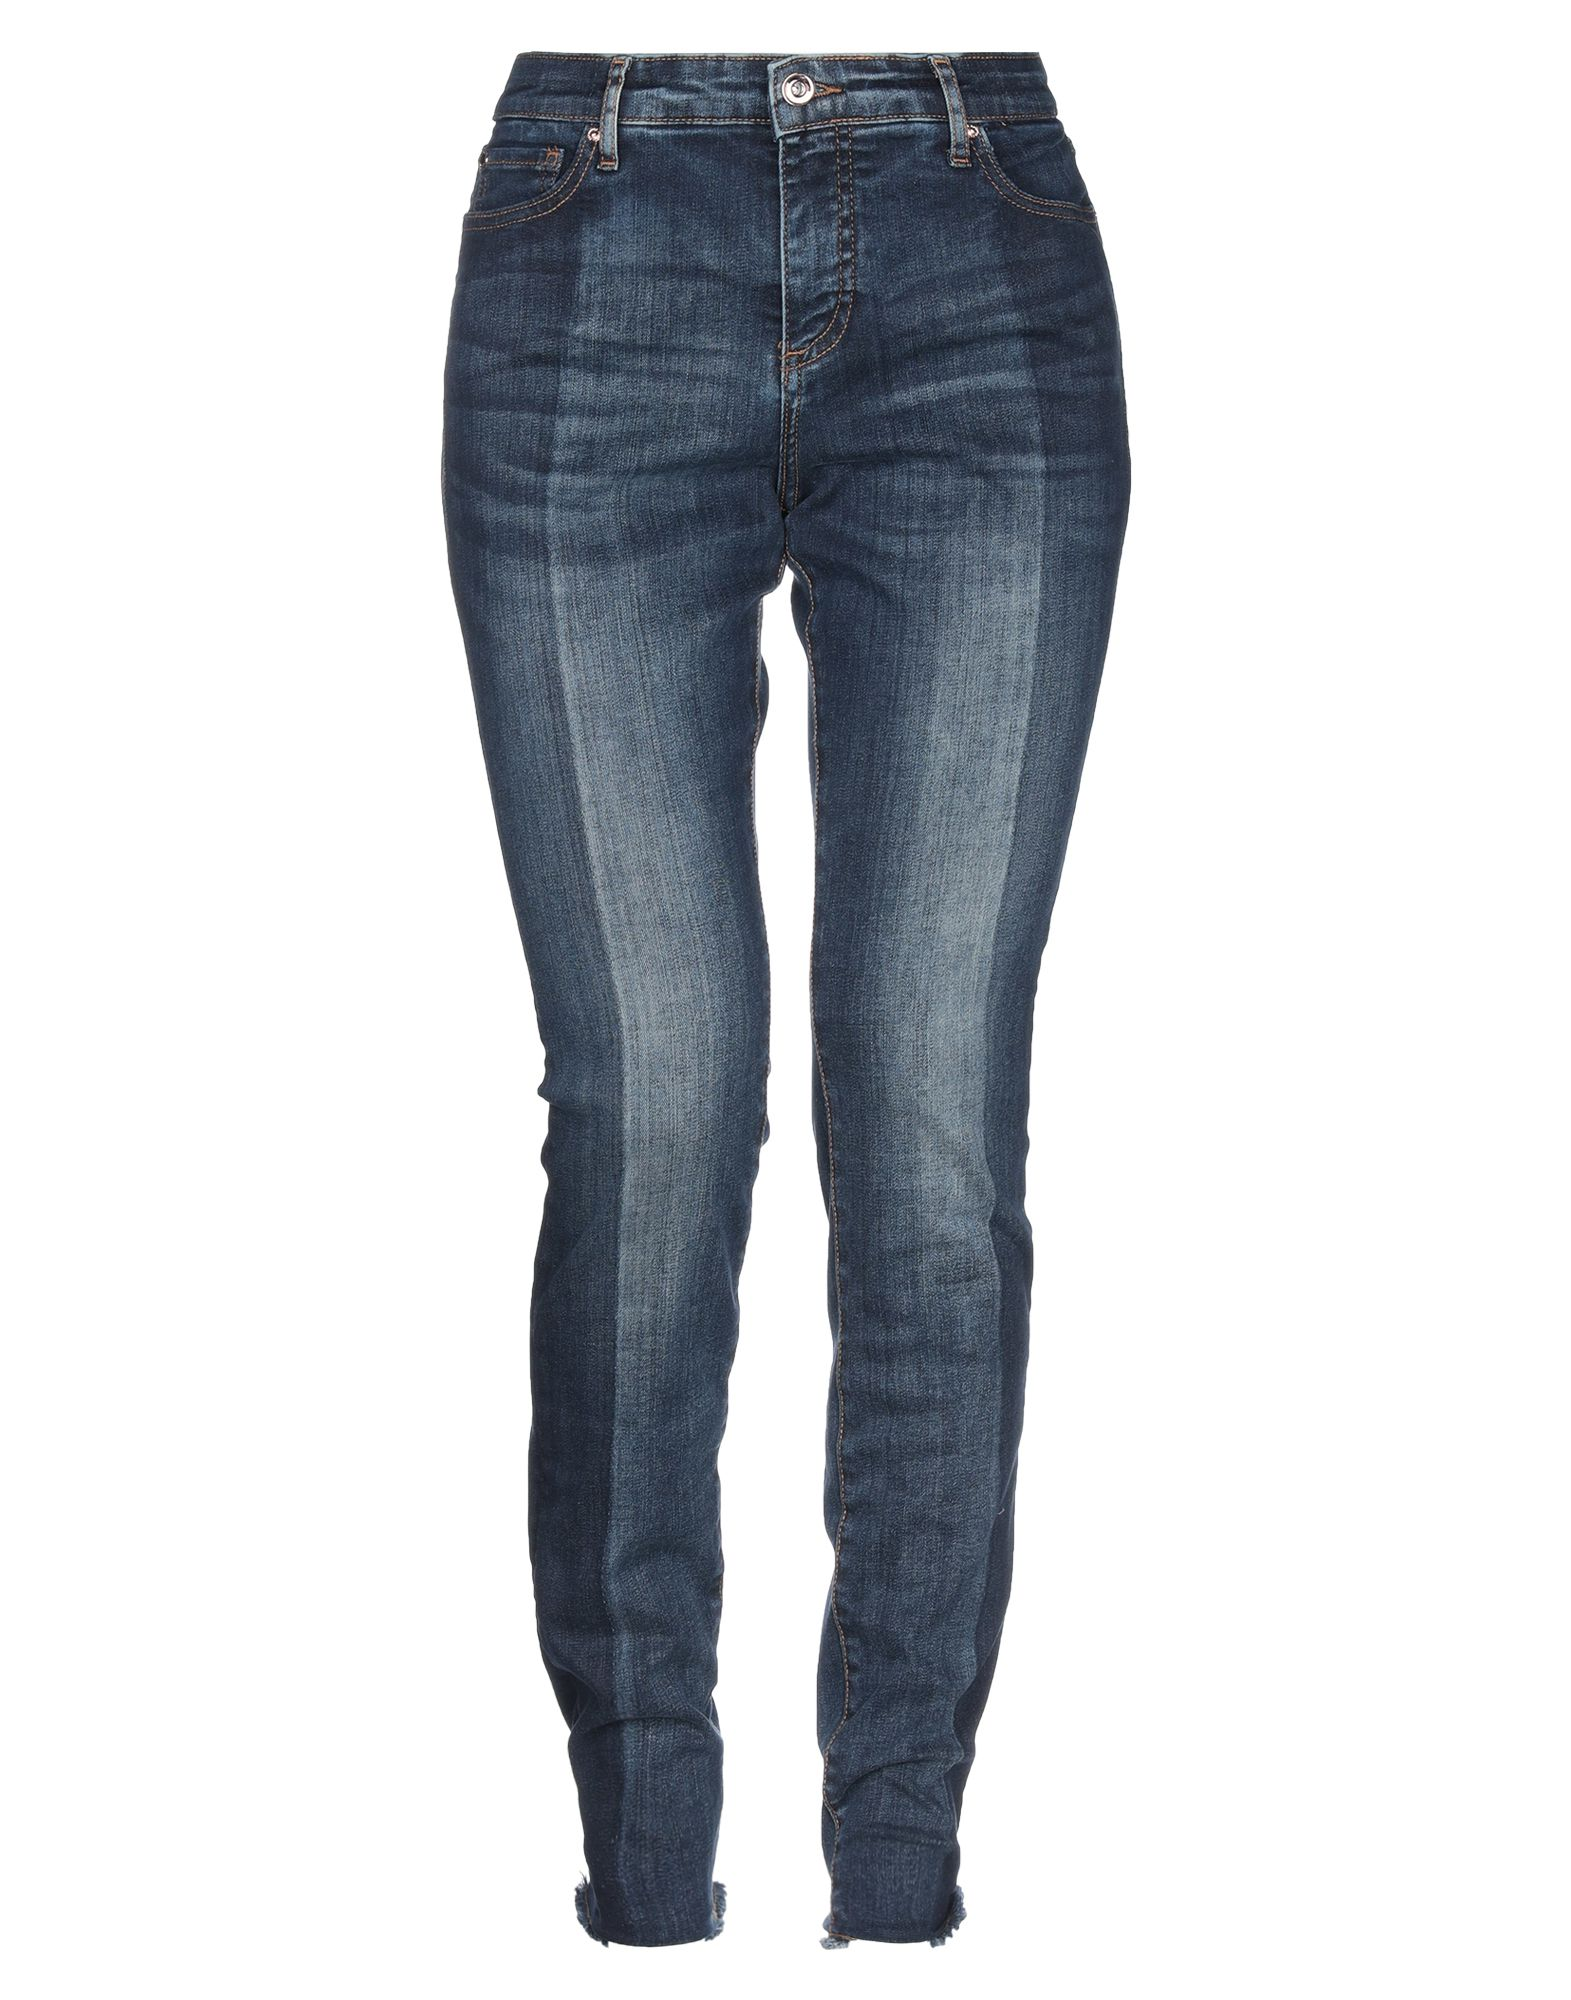 ARMANI EXCHANGE Denim pants - Item 42788709